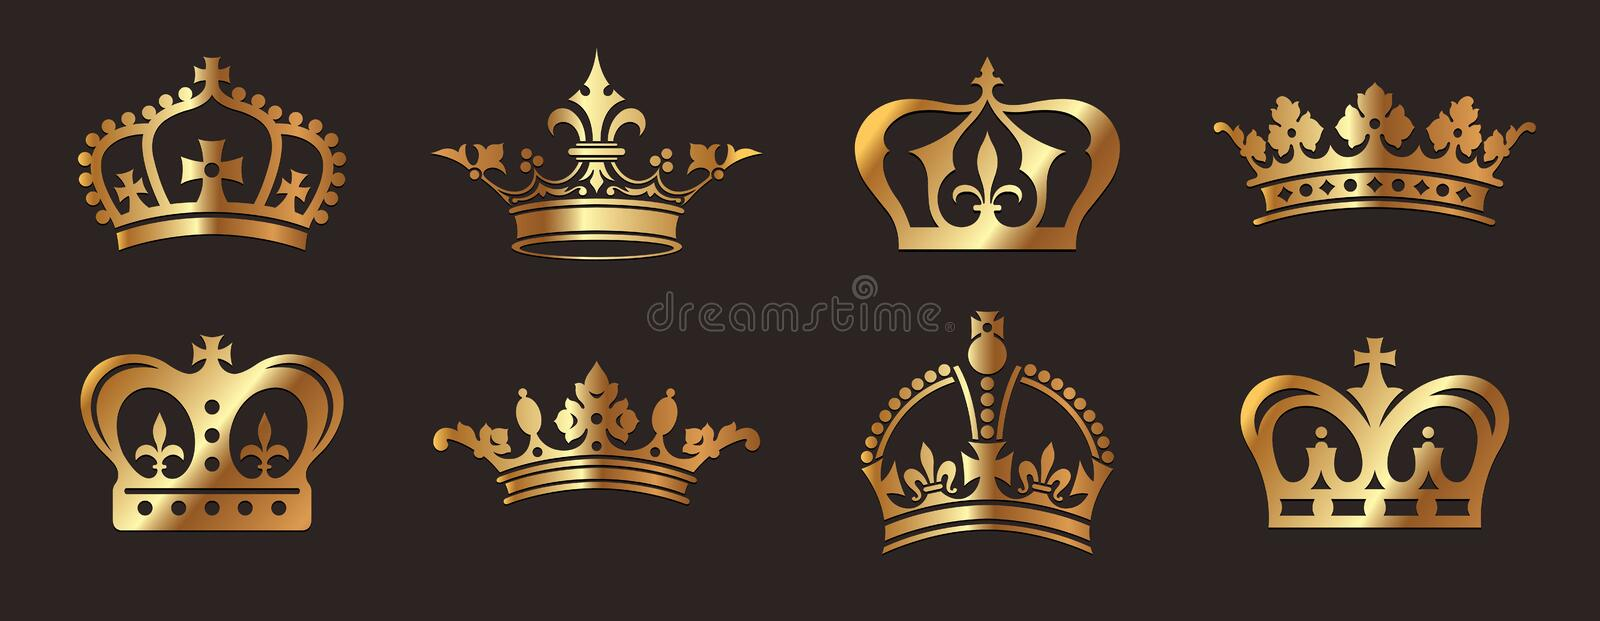 Download Golden Crowns stock vector. Image of regal, jeweled, cross - 30752821